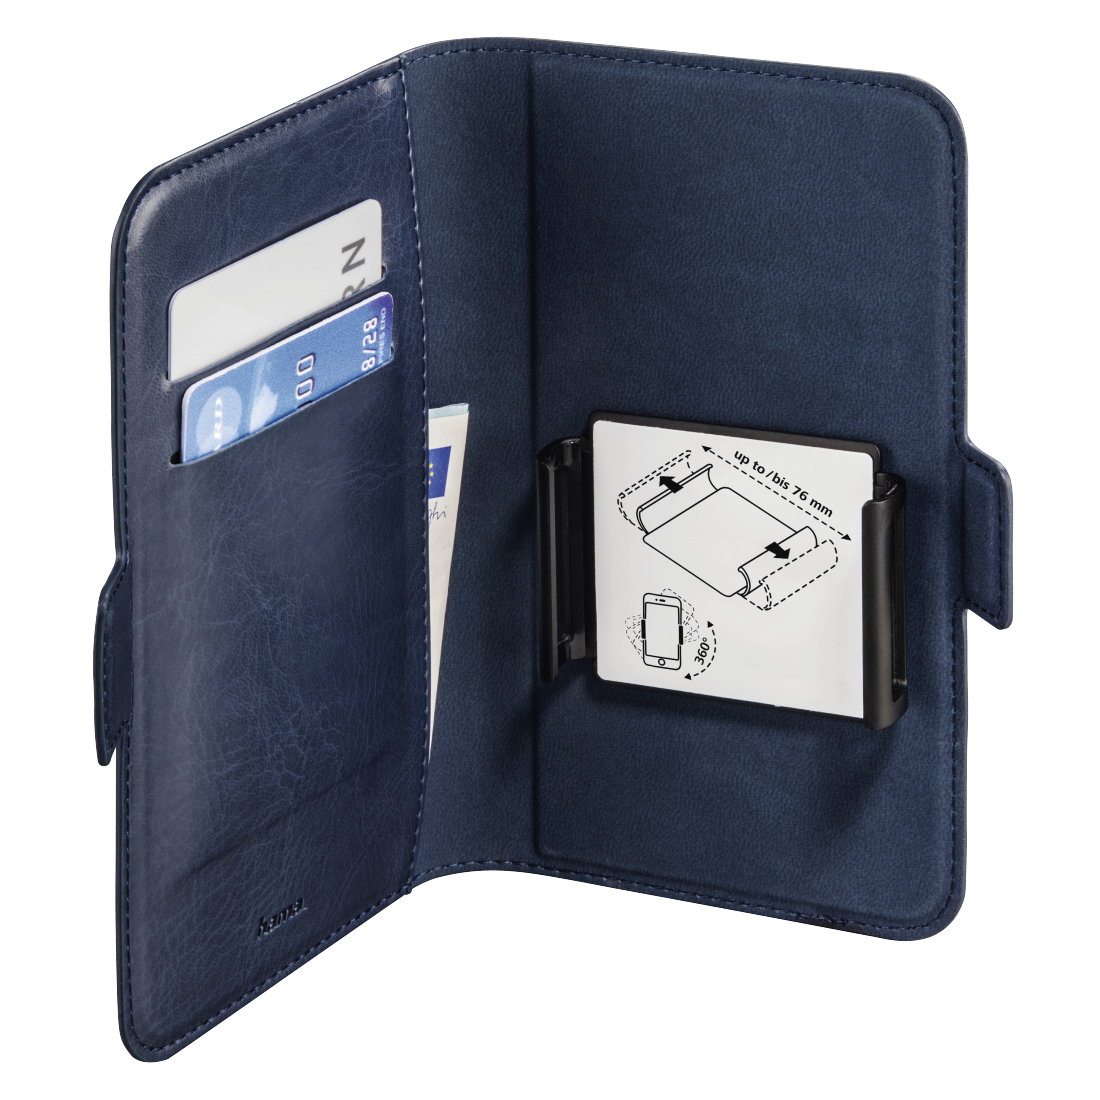 abx3 High-Res Image 3 - Hama, Smart Move Booklet Case, size L (4.0 - 4.5), blue